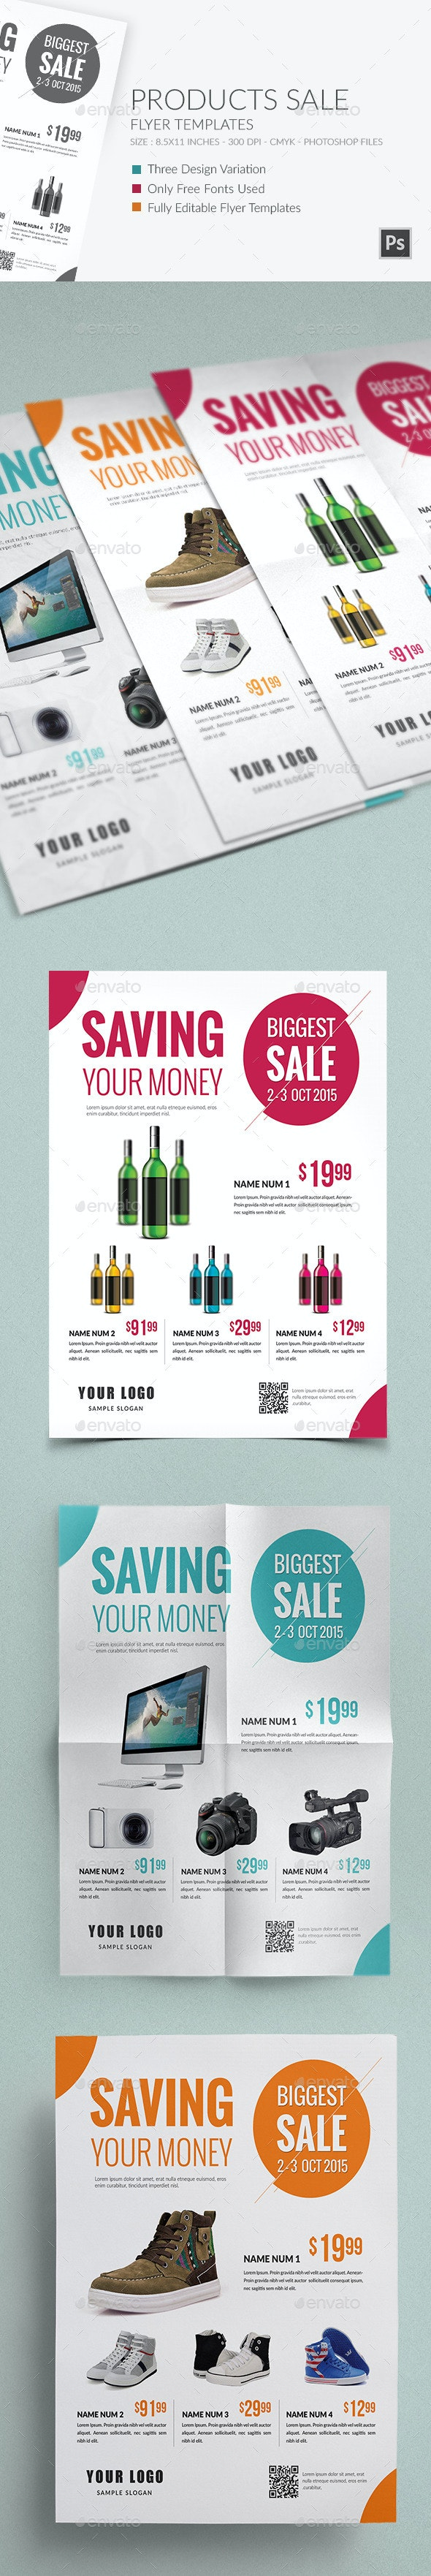 Products Sale Flyer Template - Miscellaneous Events